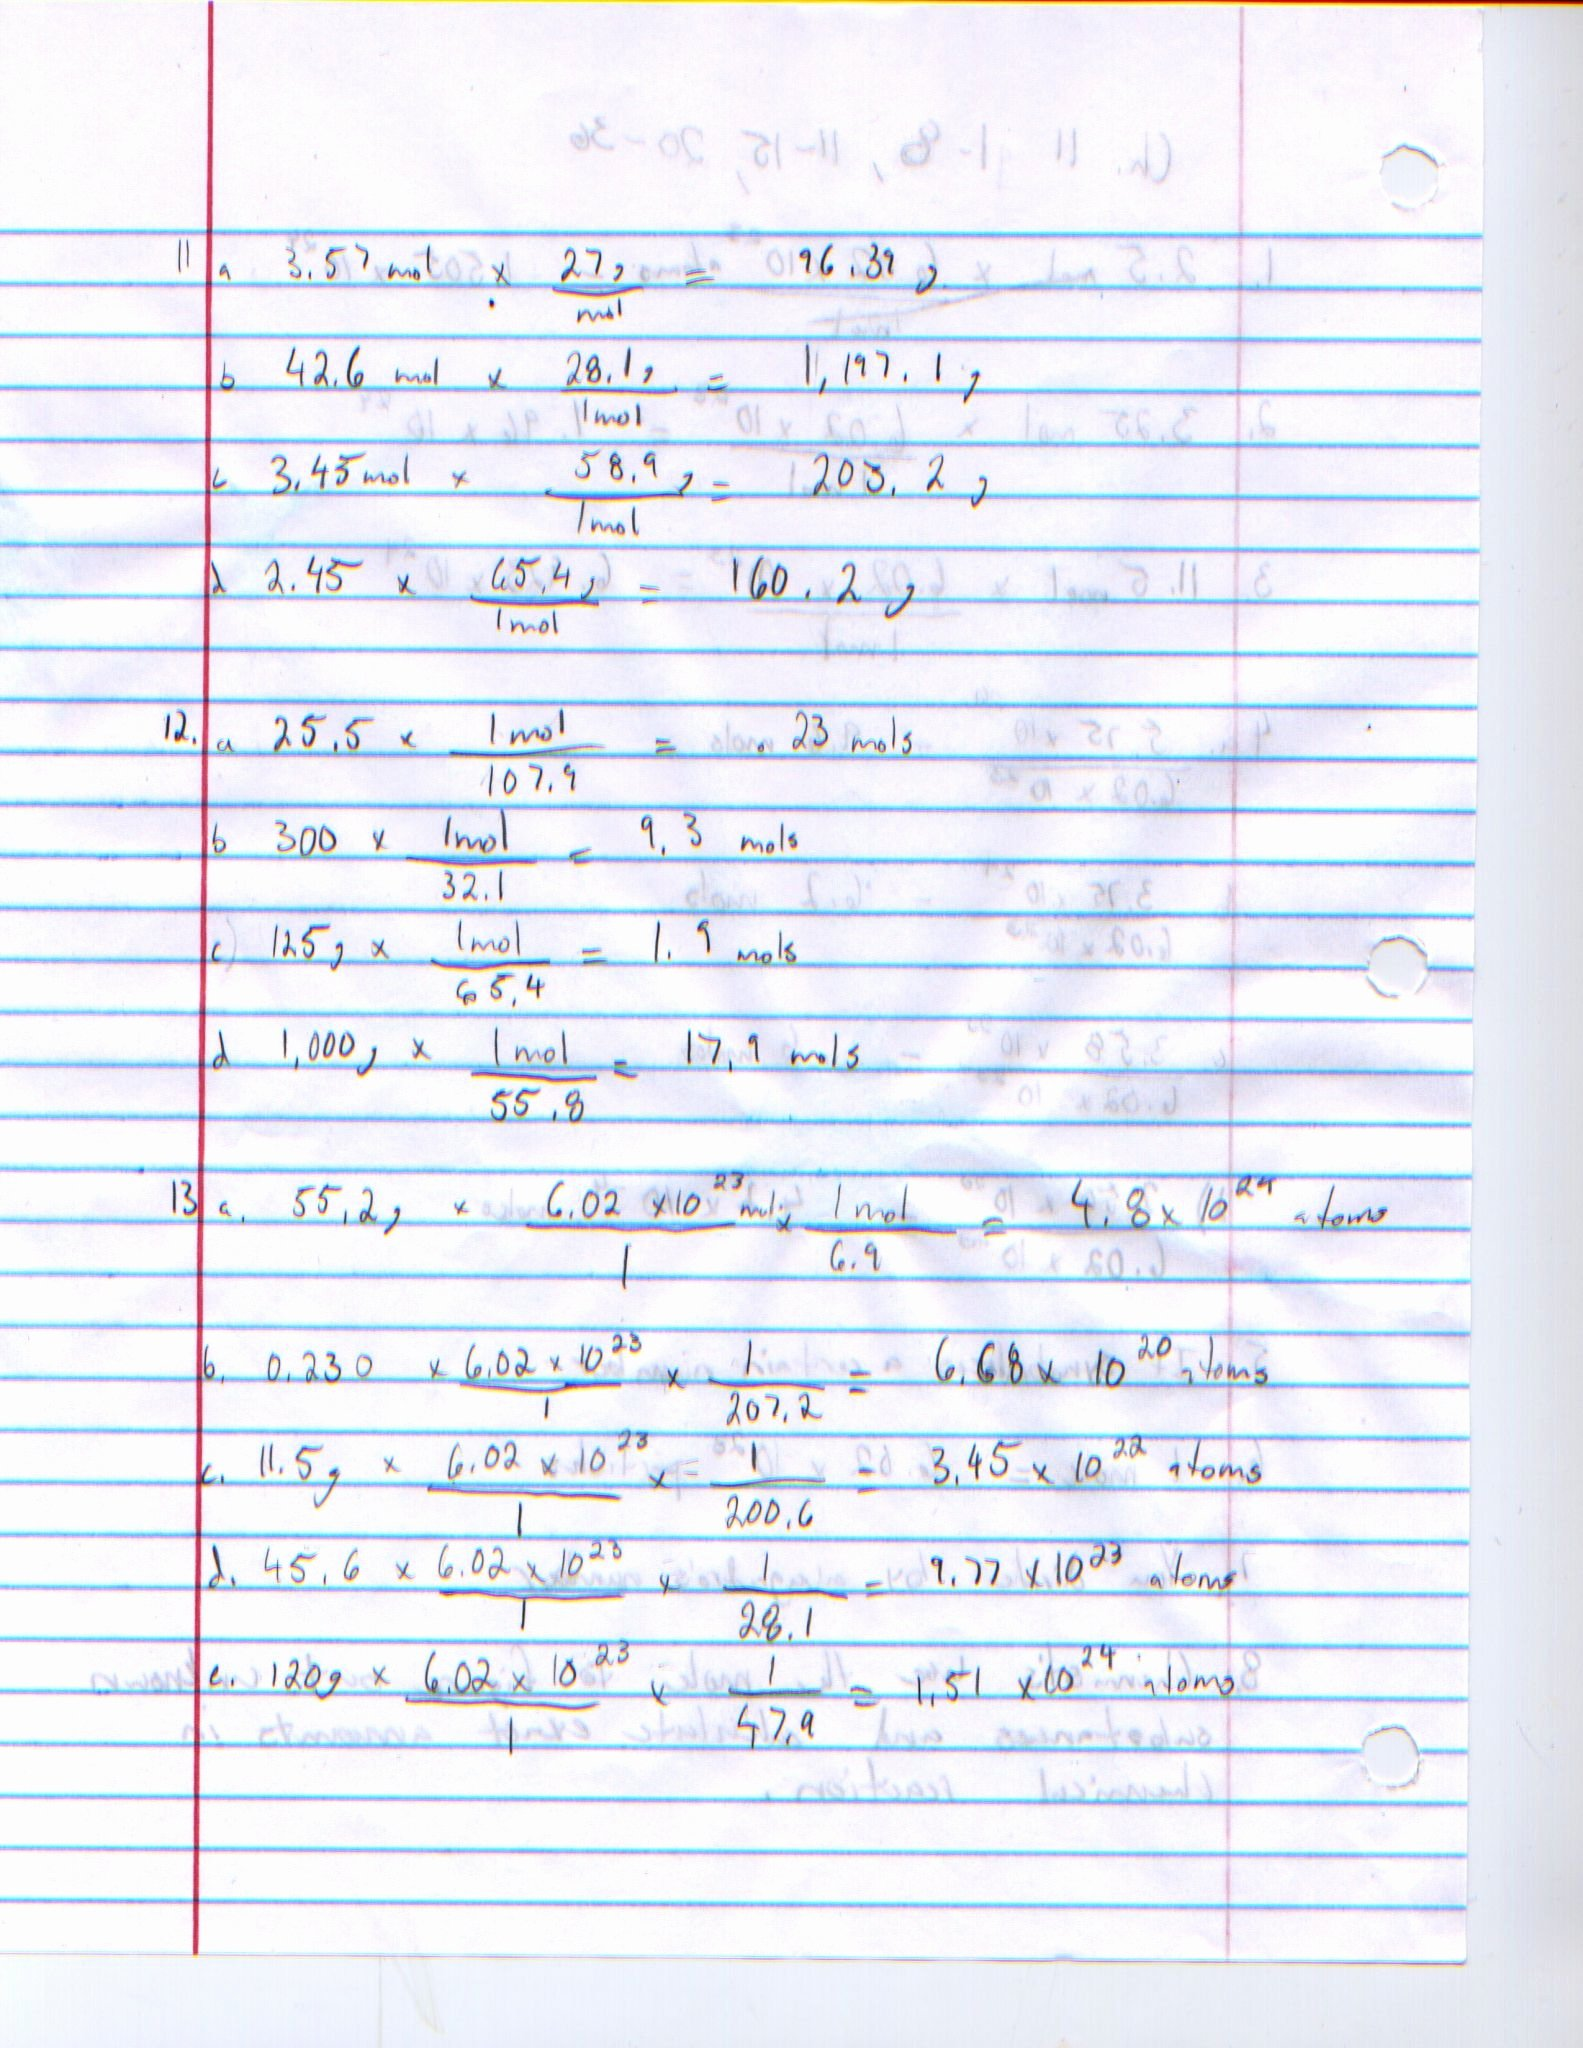 Molarity Worksheet Answer Key Fresh Mole to Grams Grams to Moles Conversions Worksheet Answer